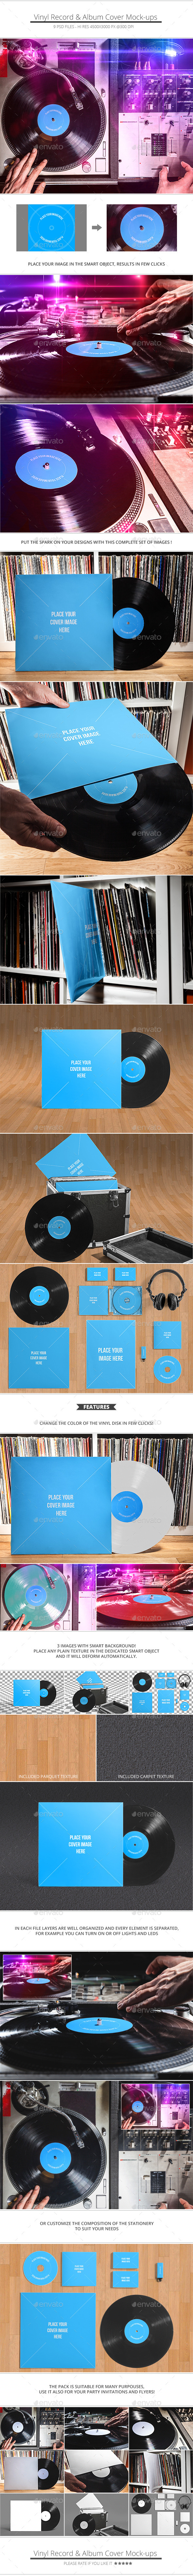 GraphicRiver Vinyl Record & Album Cover Mock-ups Party Pack 10310707